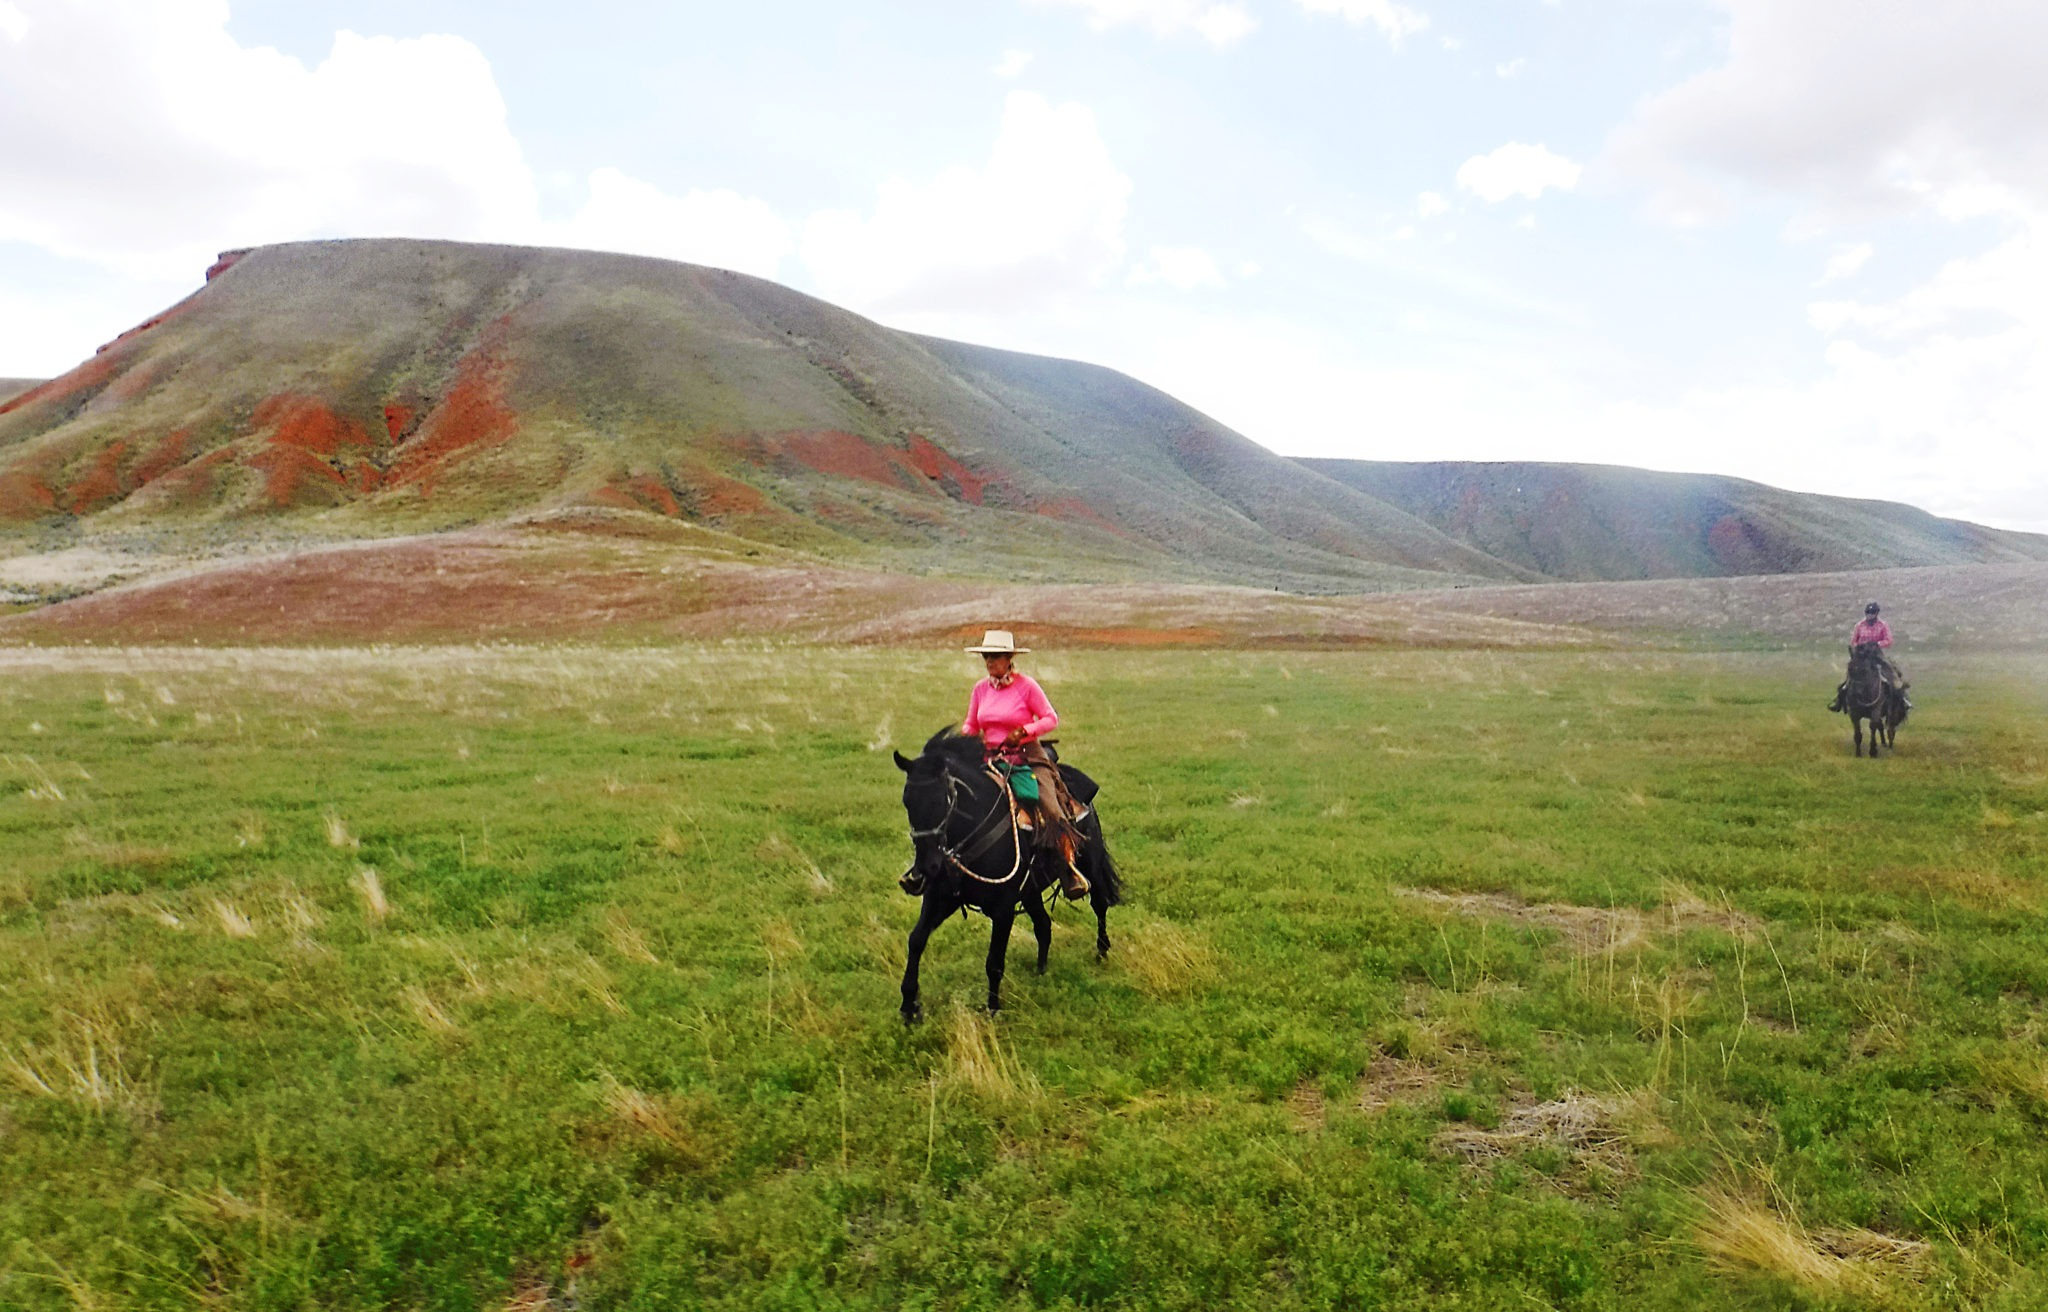 Shell, Wyoming - Globetrotting horse riding holidays